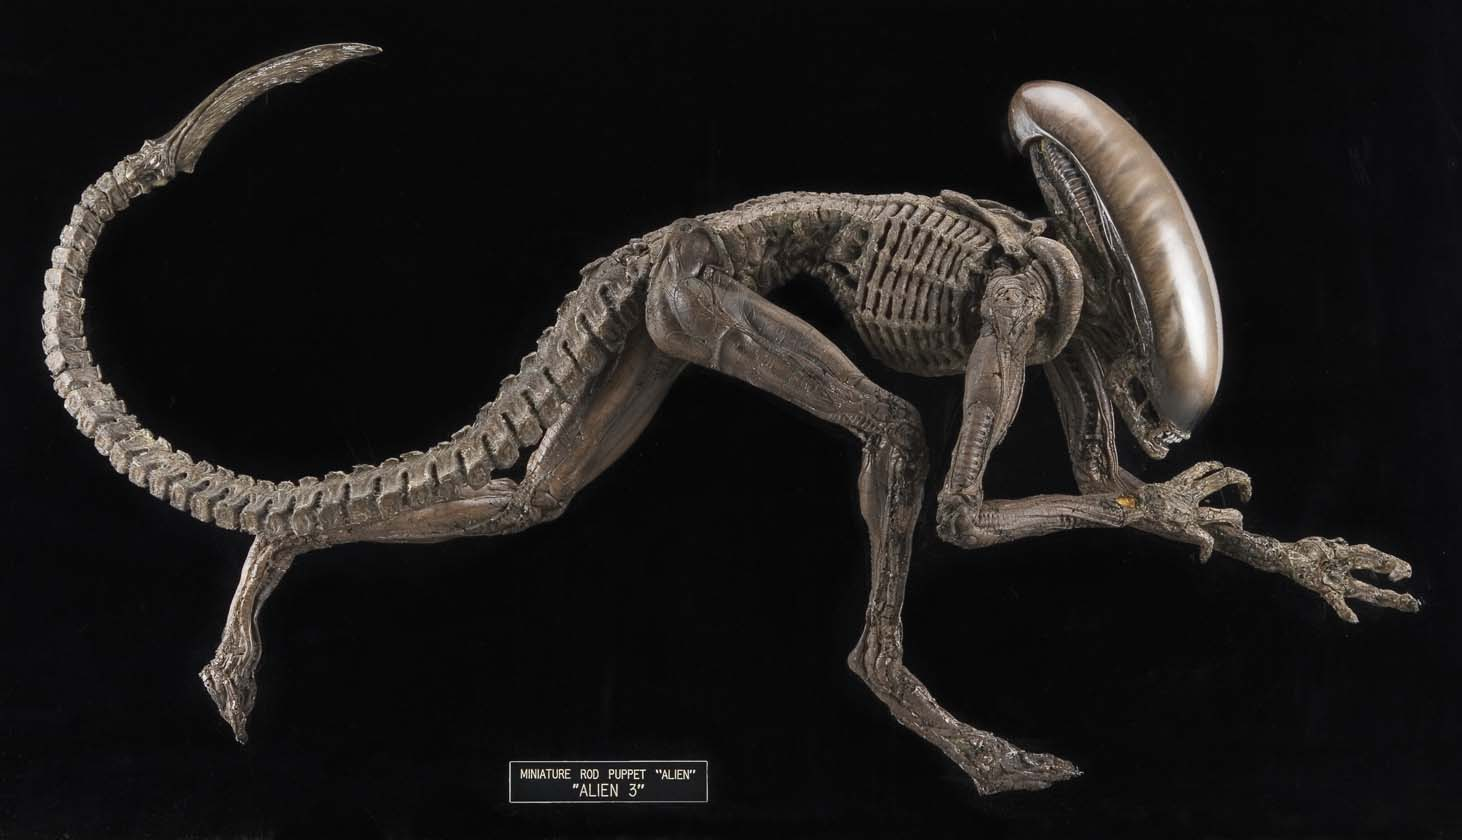 Alien 3 miniature